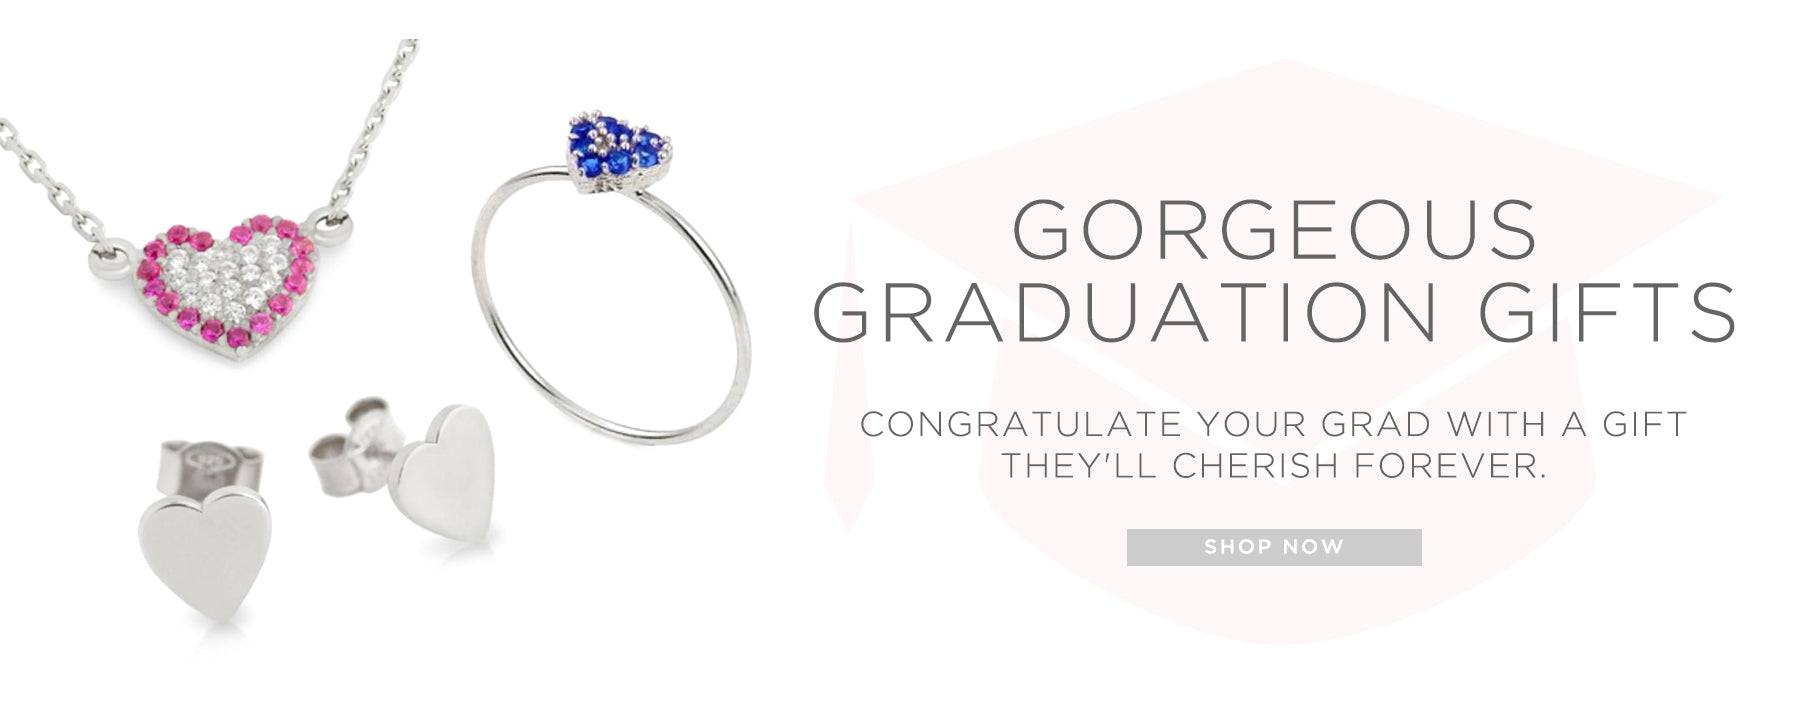 Gorgeous graduation Gifts. Congratulate your grad with a gift they'll cherish forever. Shop now.